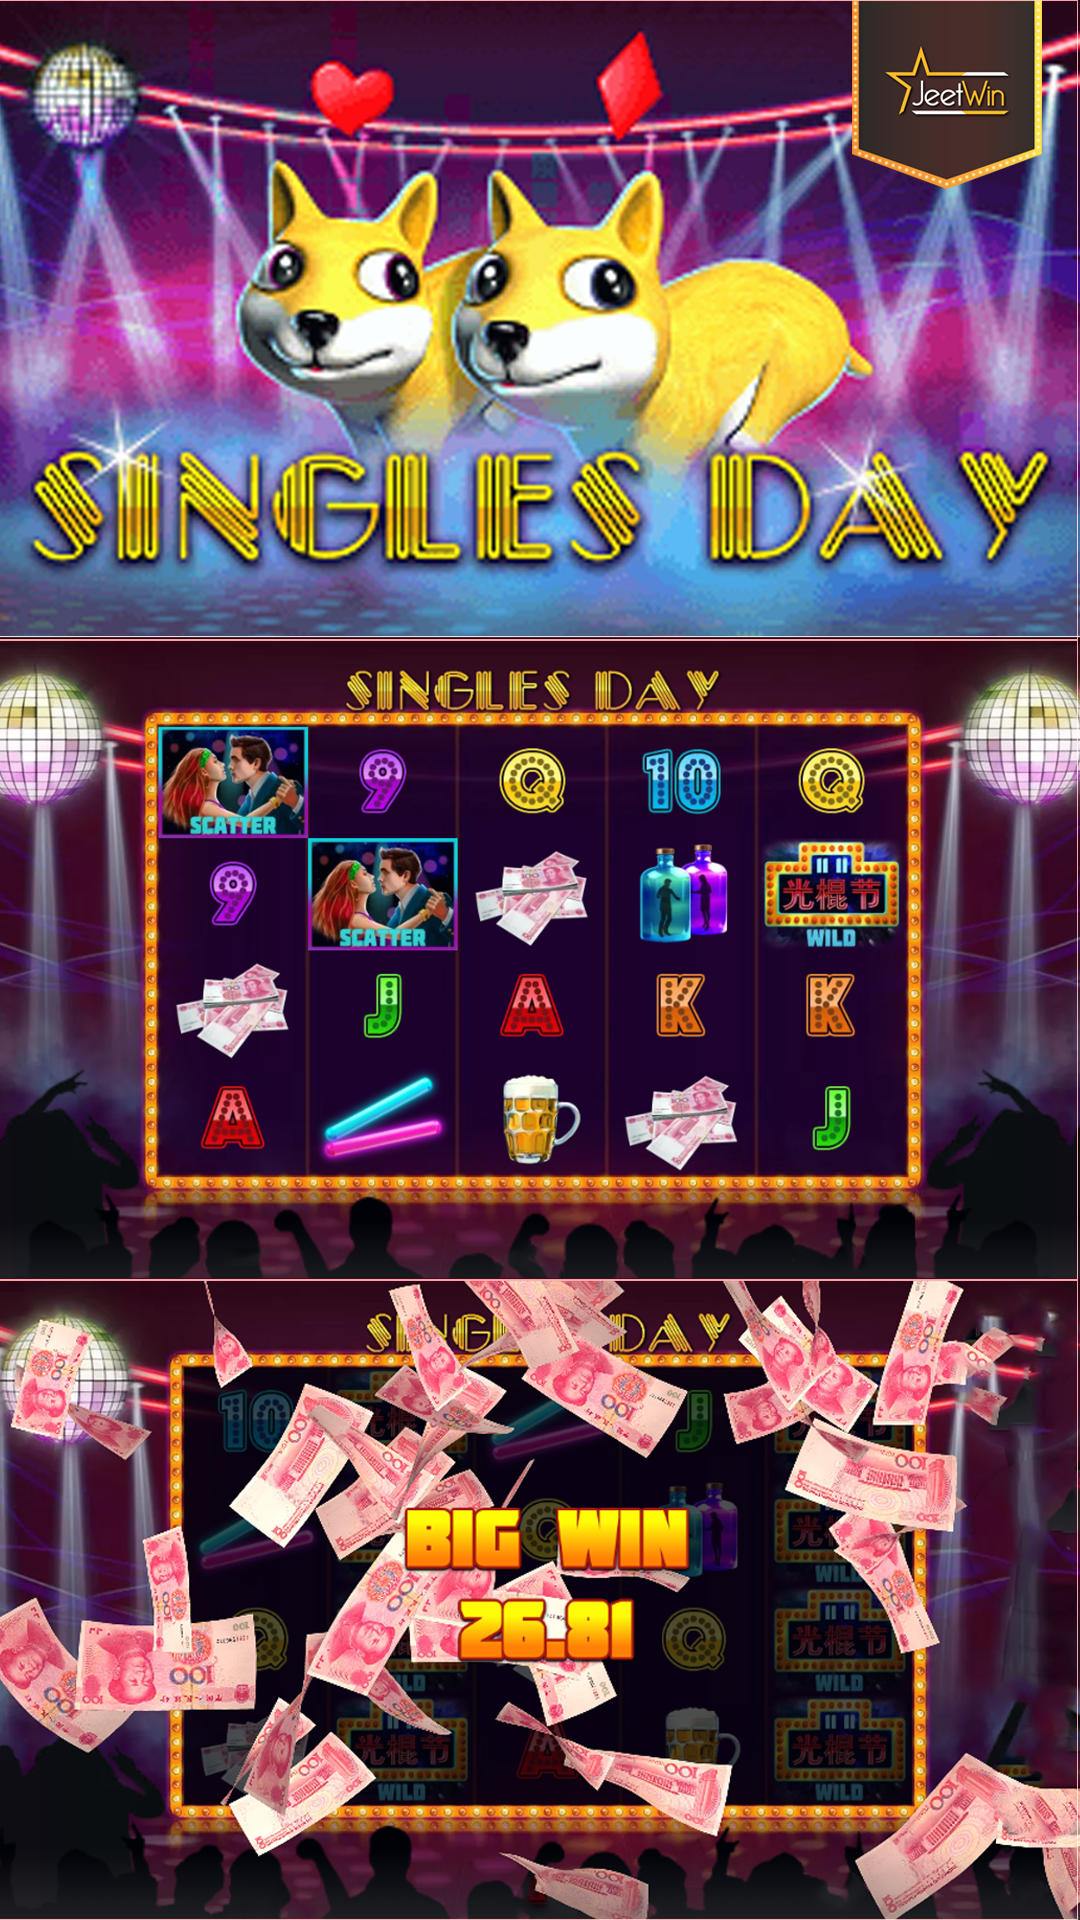 Play the Singles Day Slot game and get a chance to win BIG